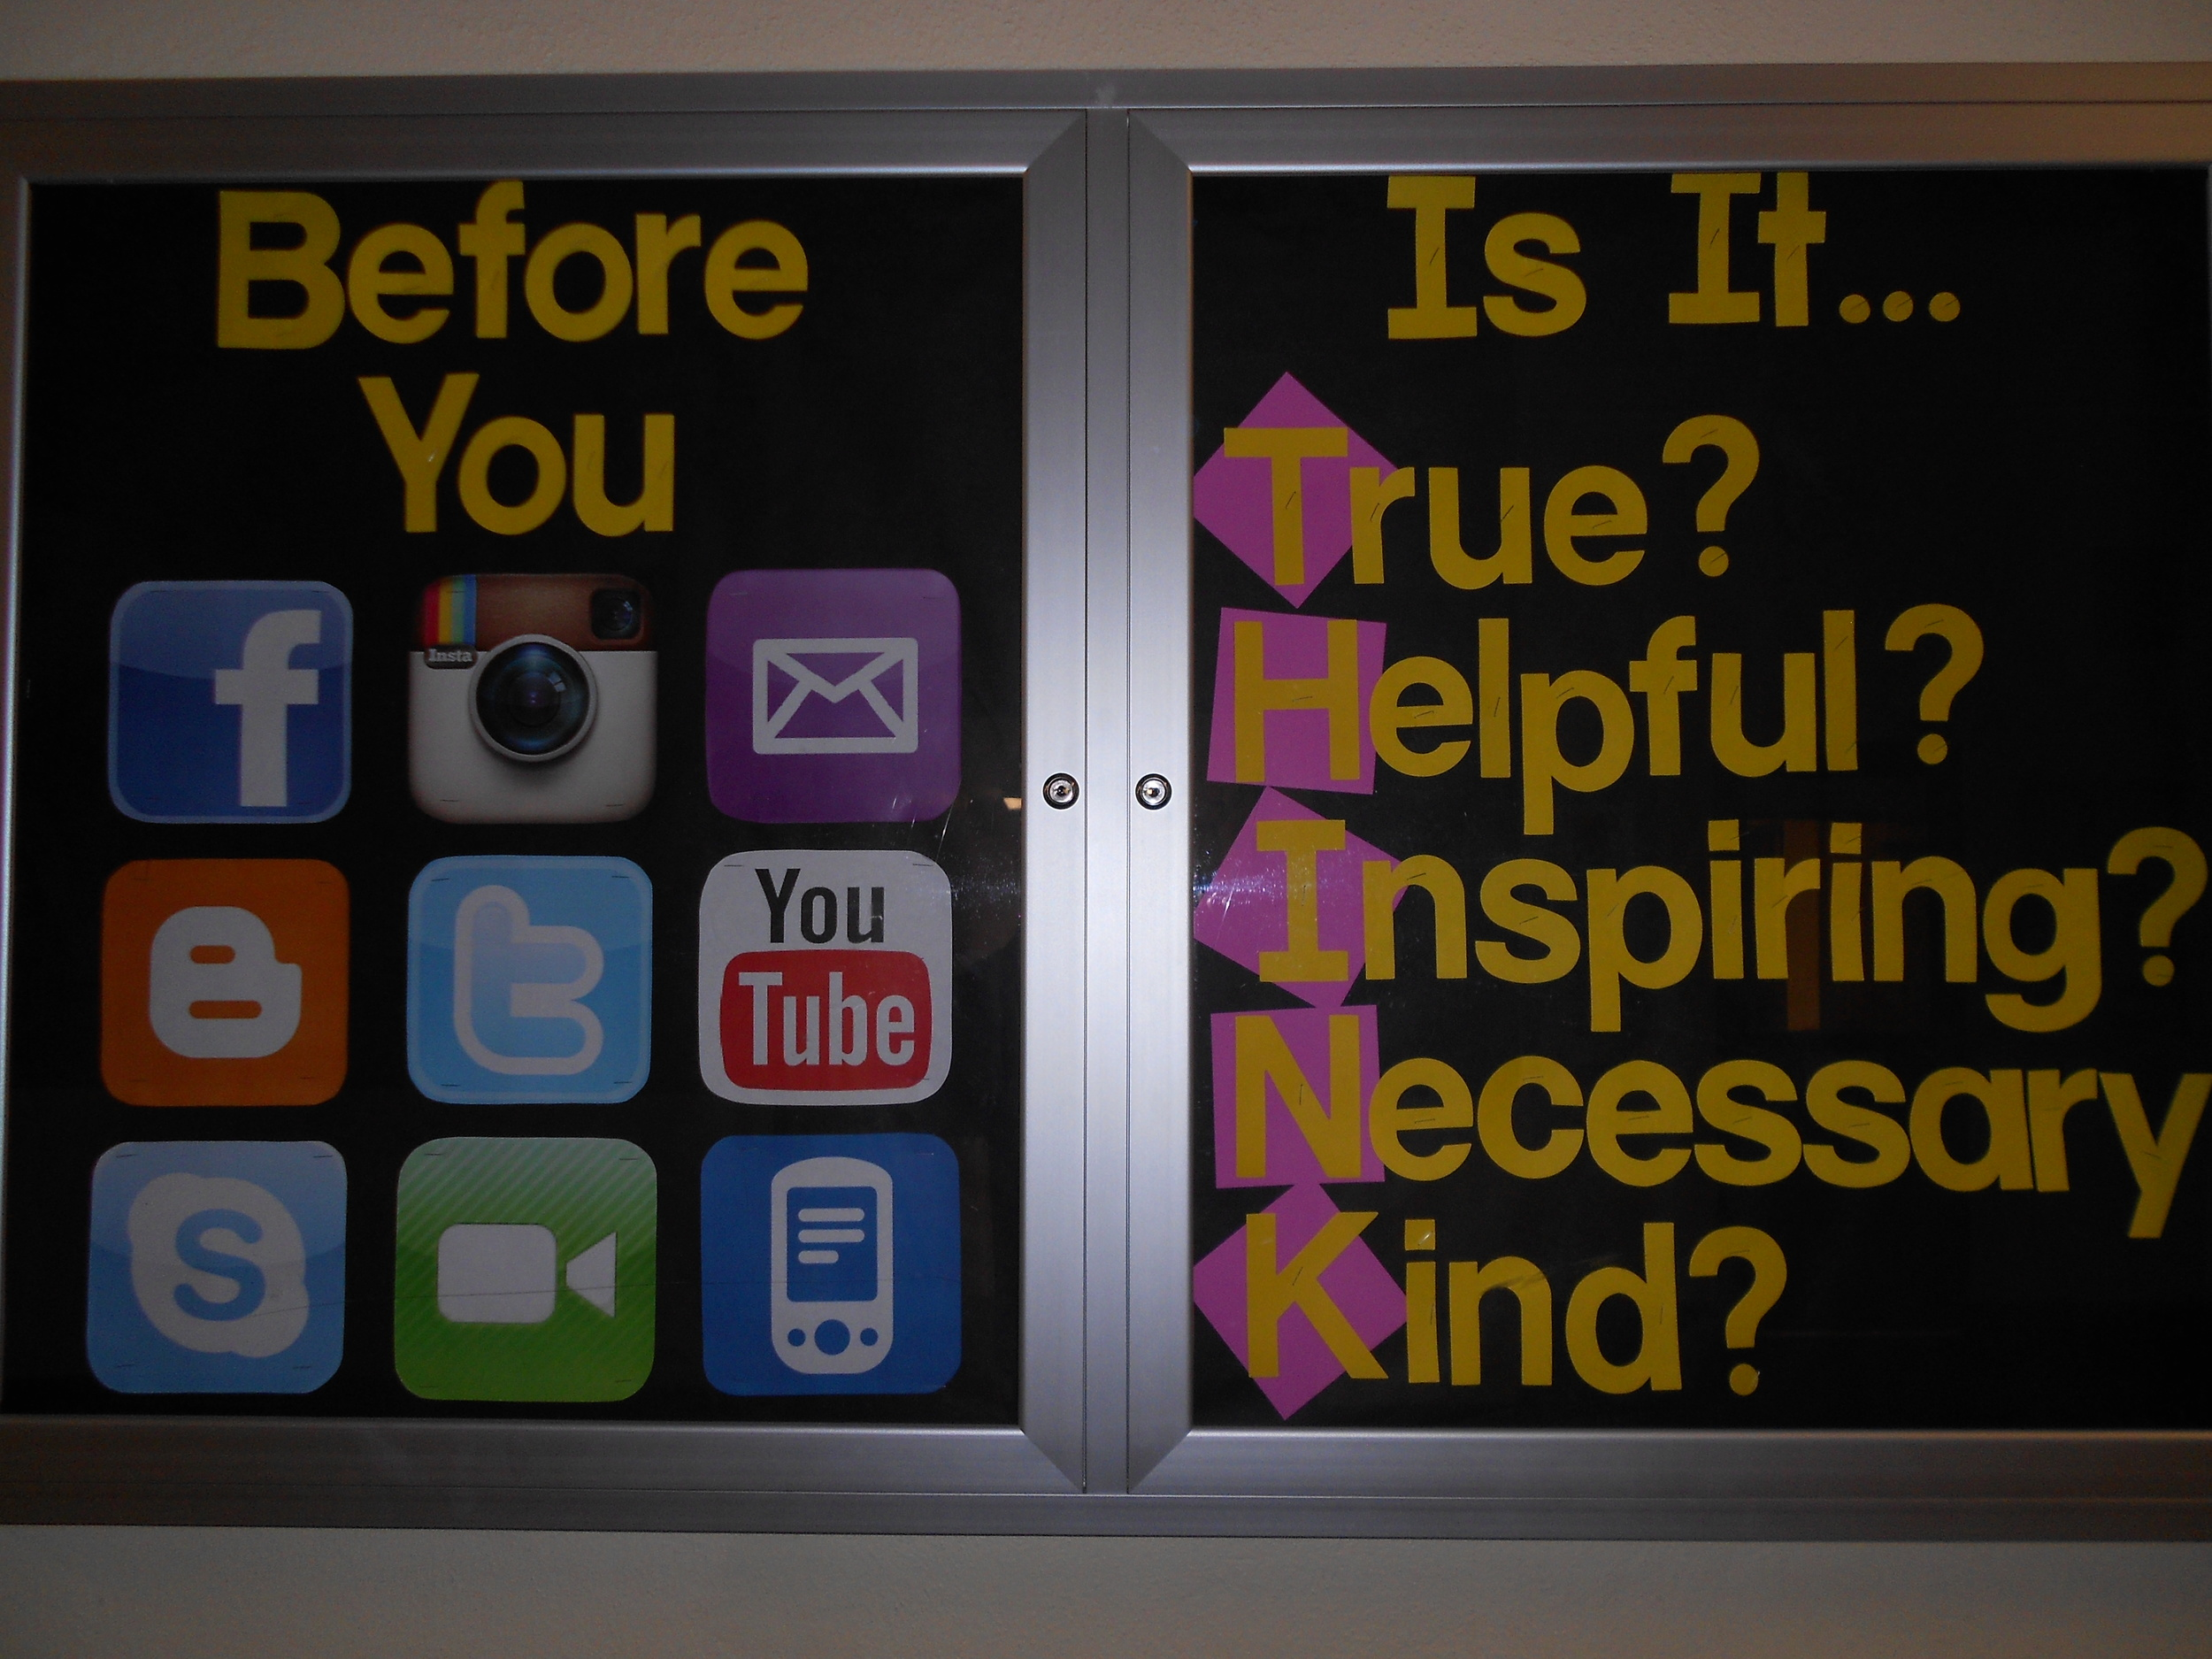 Rachel Kern shares great bulletin board ideas! Check out her blog site: Kern's Counselor Corner